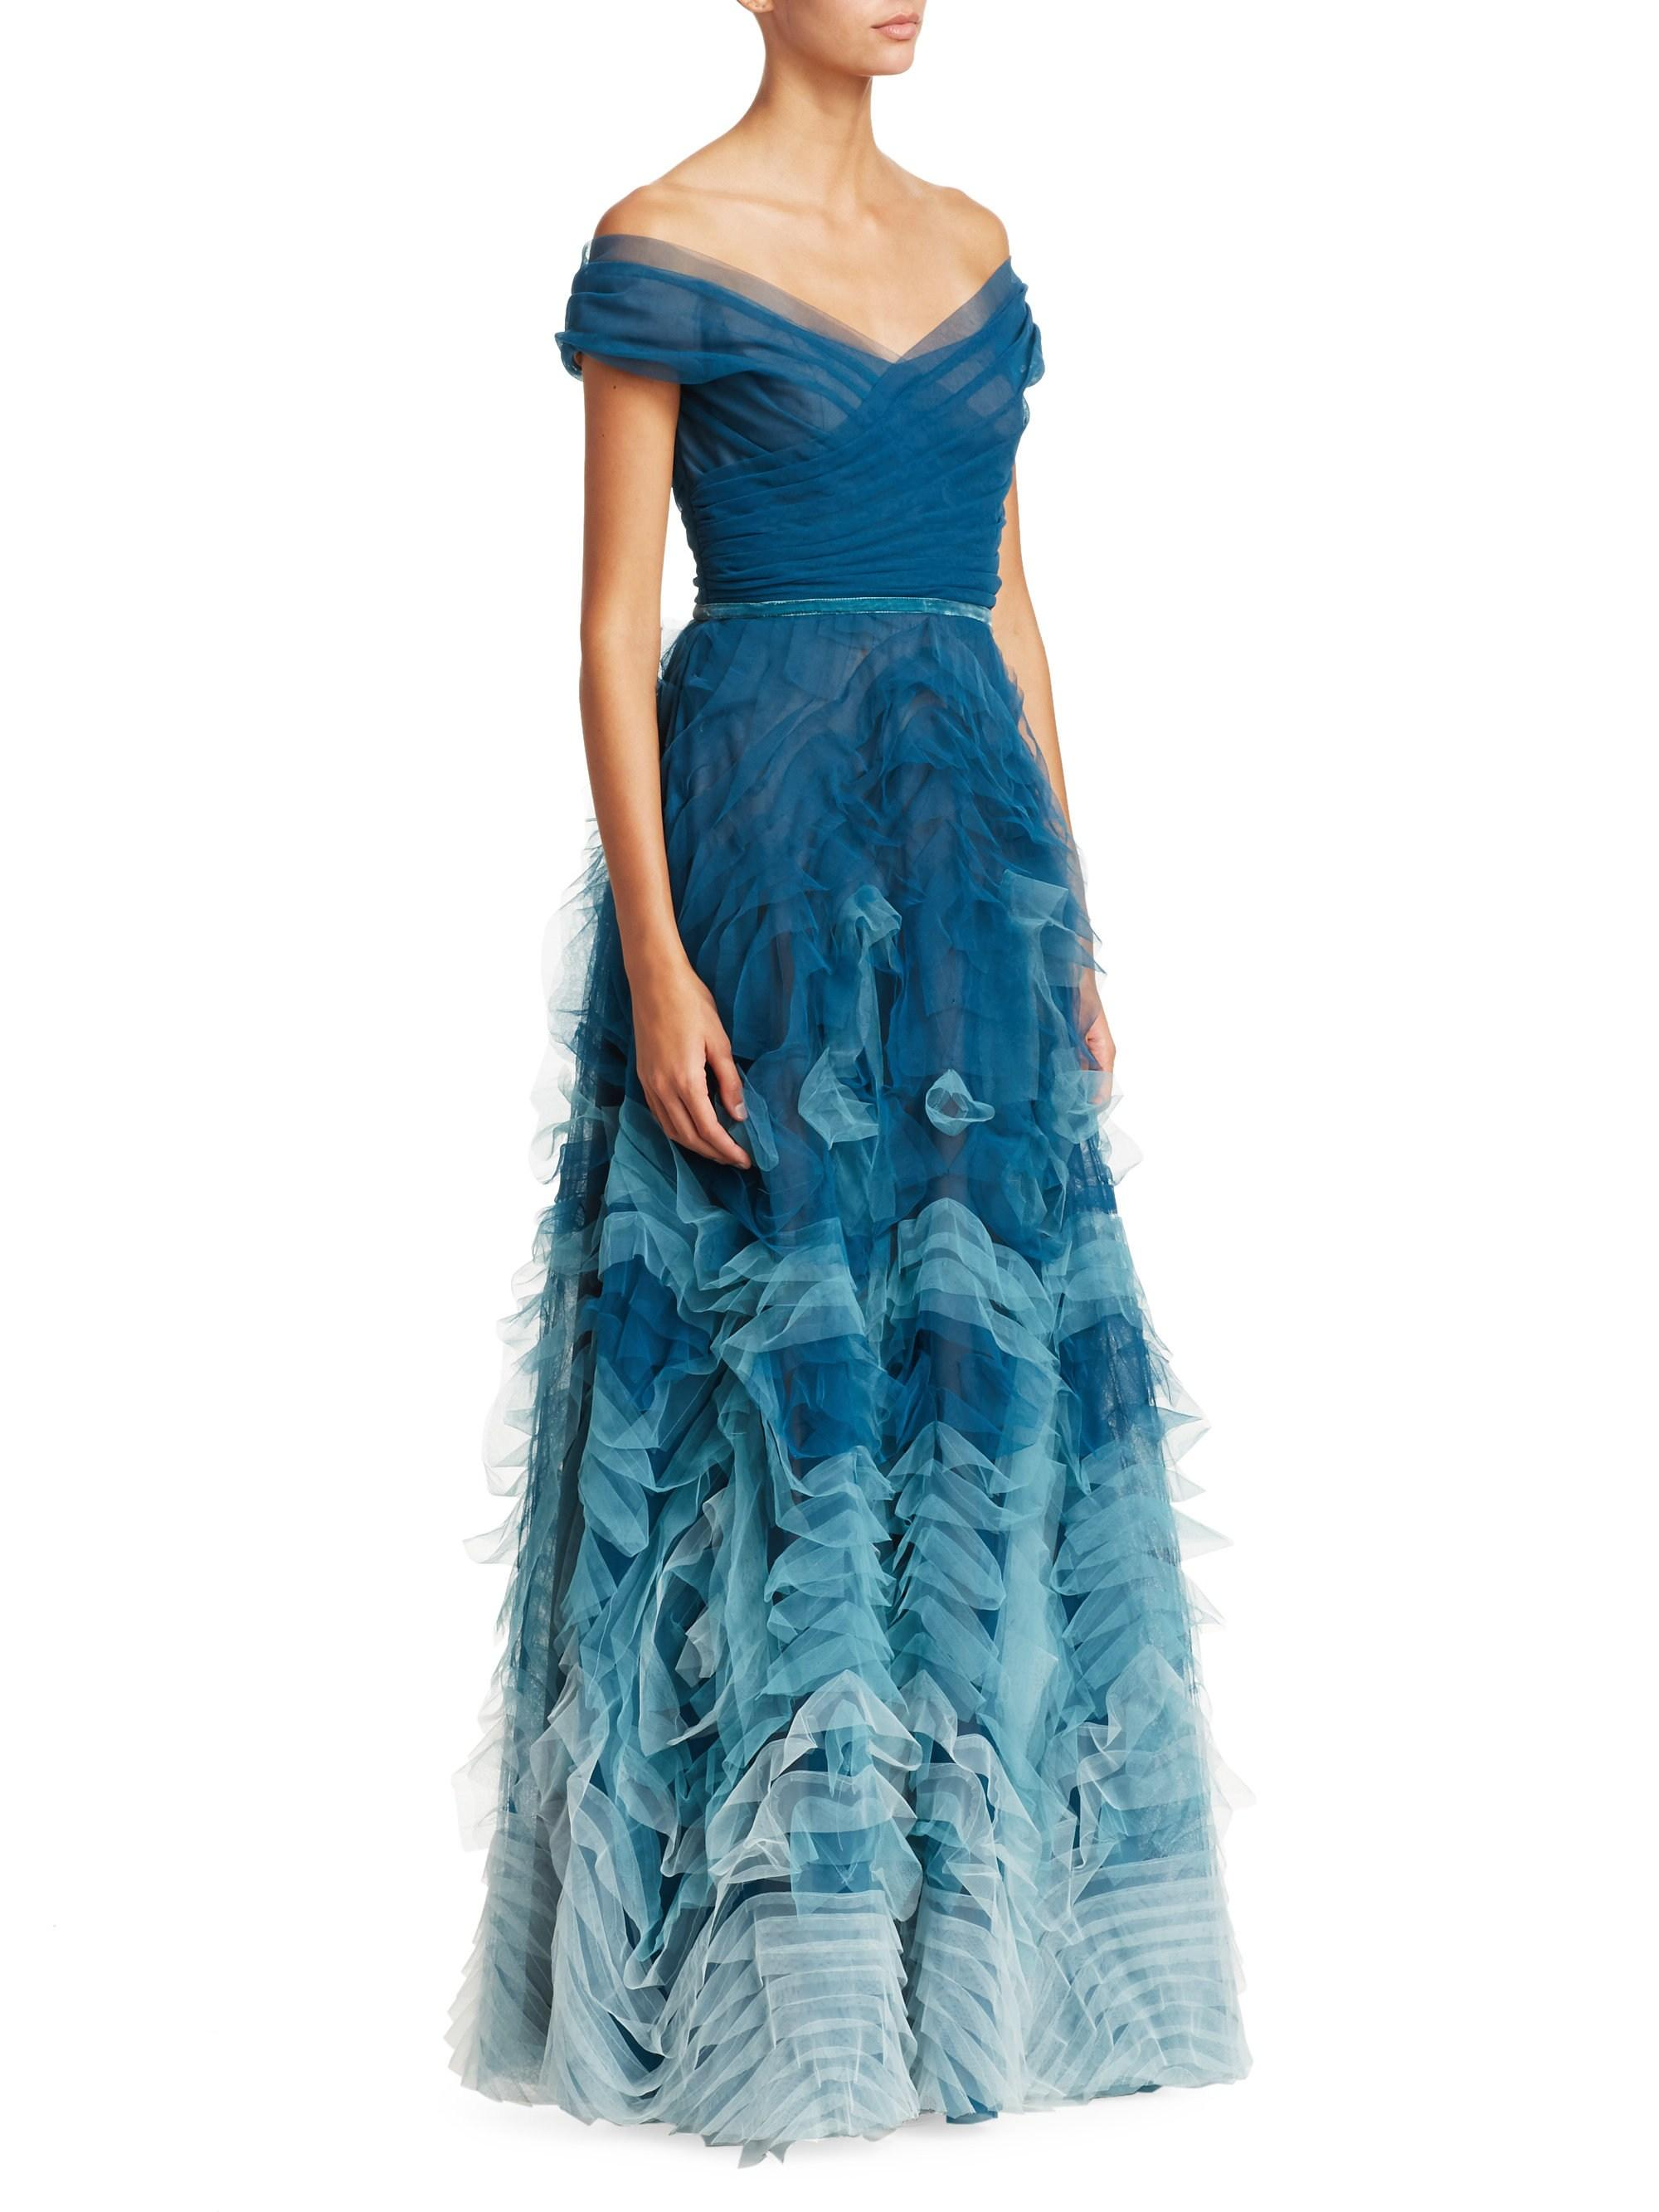 8d230a6130 Marchesa notte Off-the-shoulder Ombré Tulle Gown in Blue - Lyst